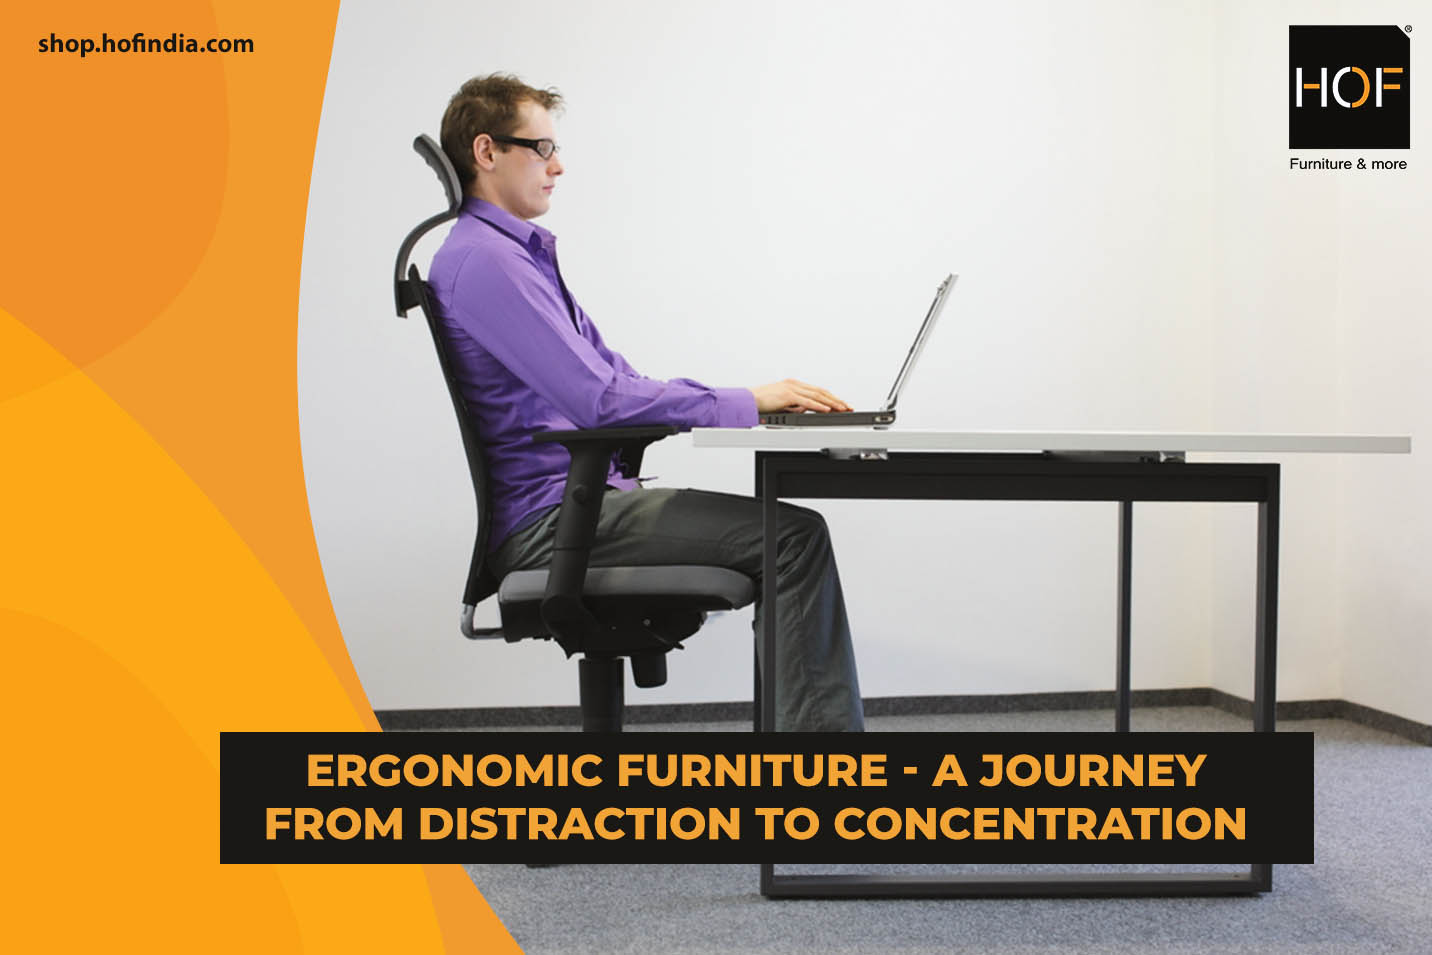 Ergonomic furniture - a journey from distraction to concentration